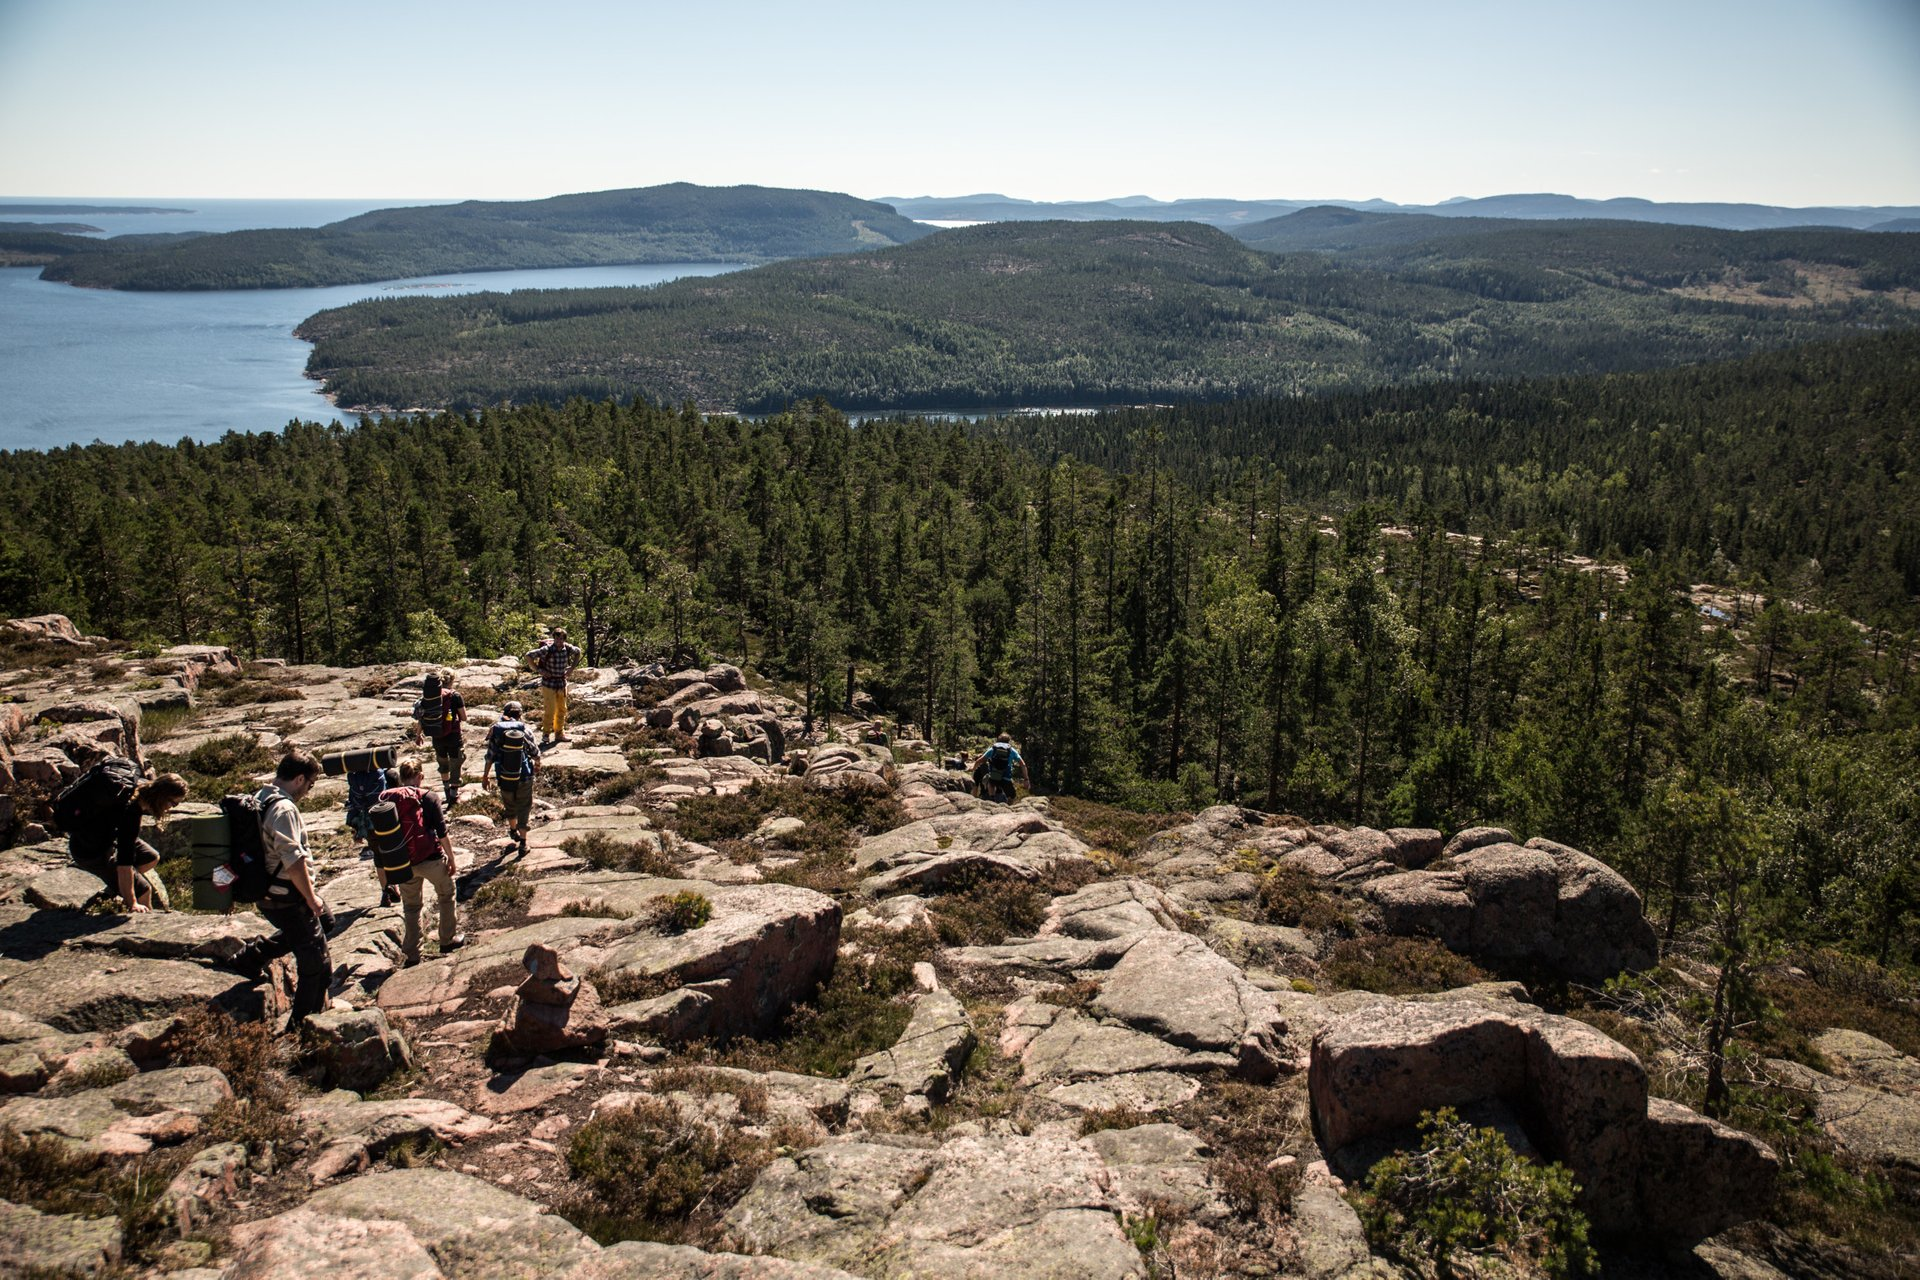 Hiking and Trekking in Sweden - Best Season 2020